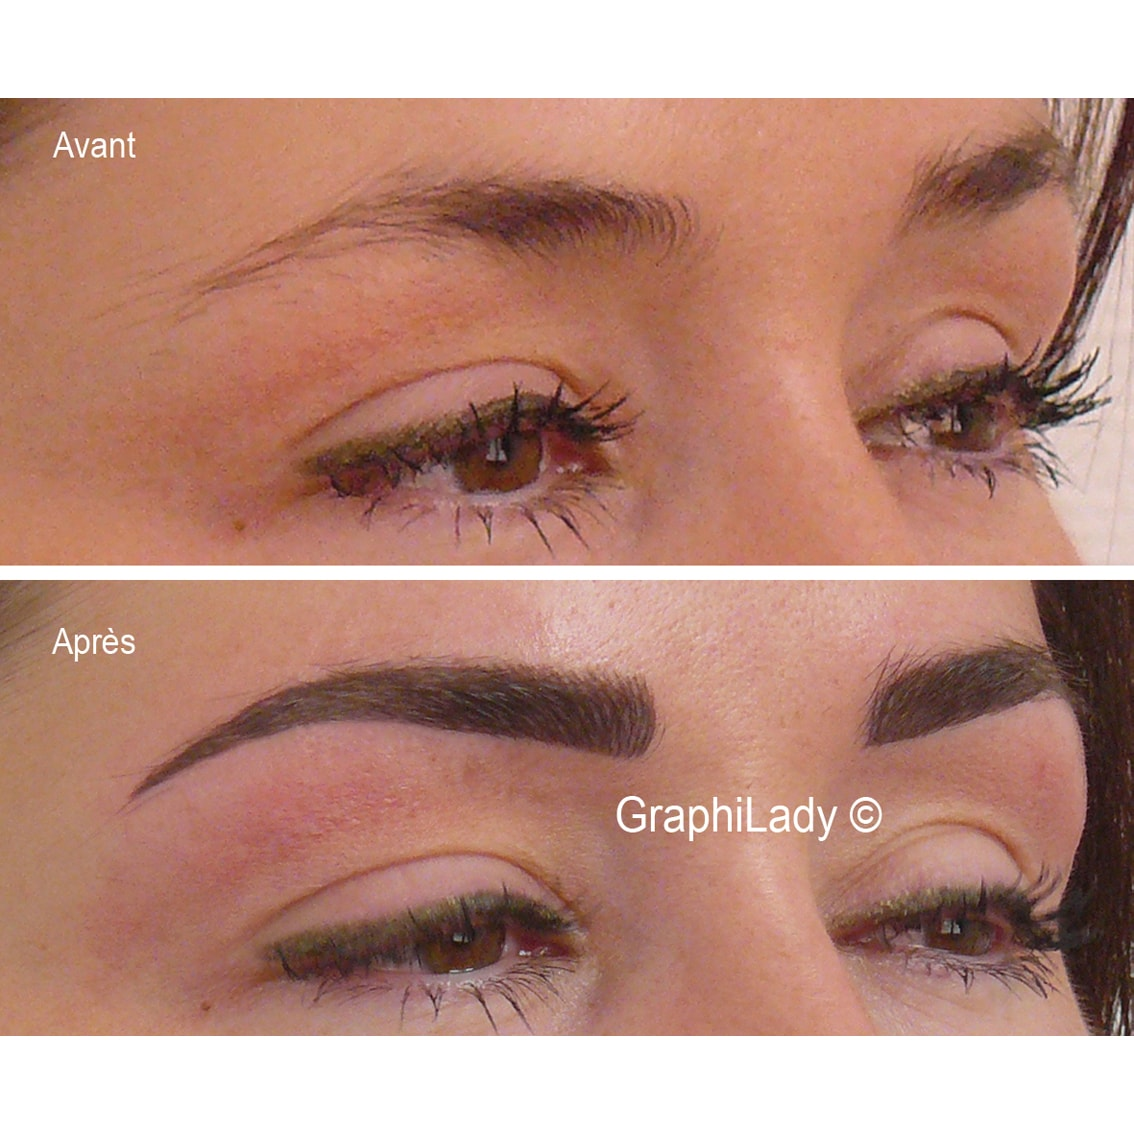 maquillage permanent sourcils 10 graphilady